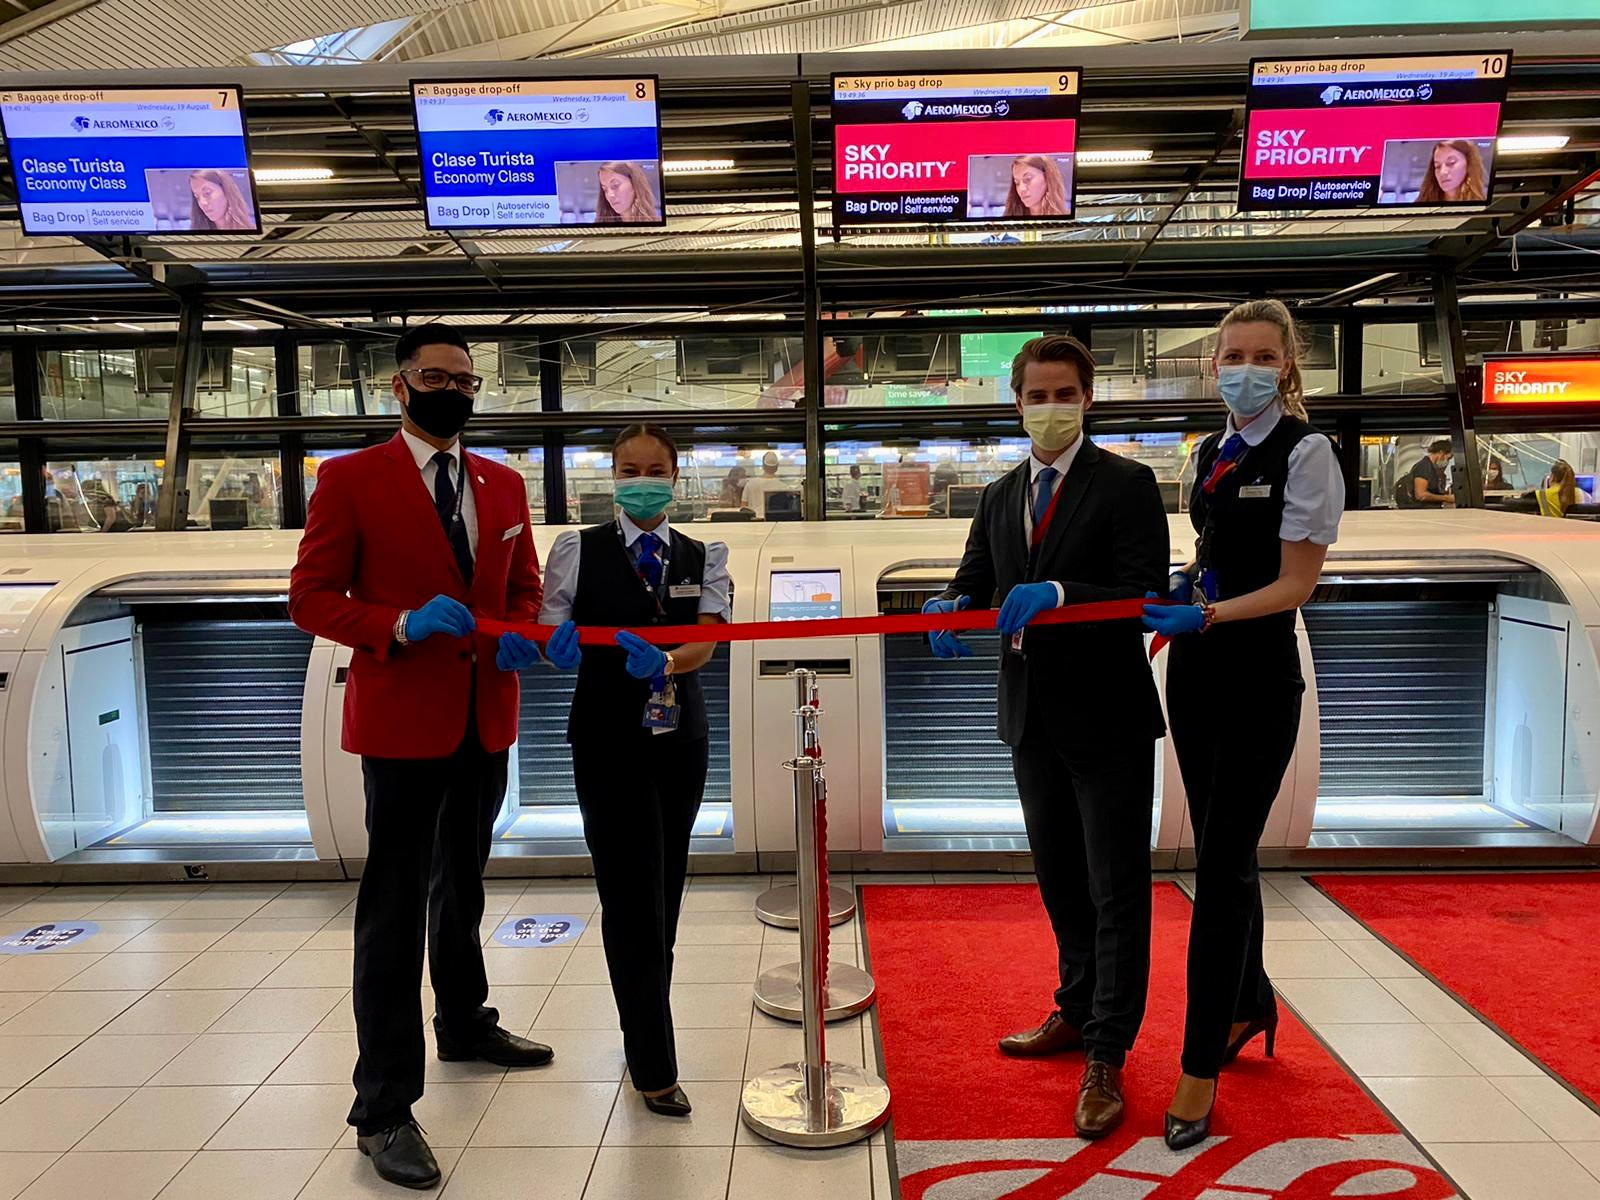 Aeromexico launches automated check in process in Amsterdam's Schipho International Airport